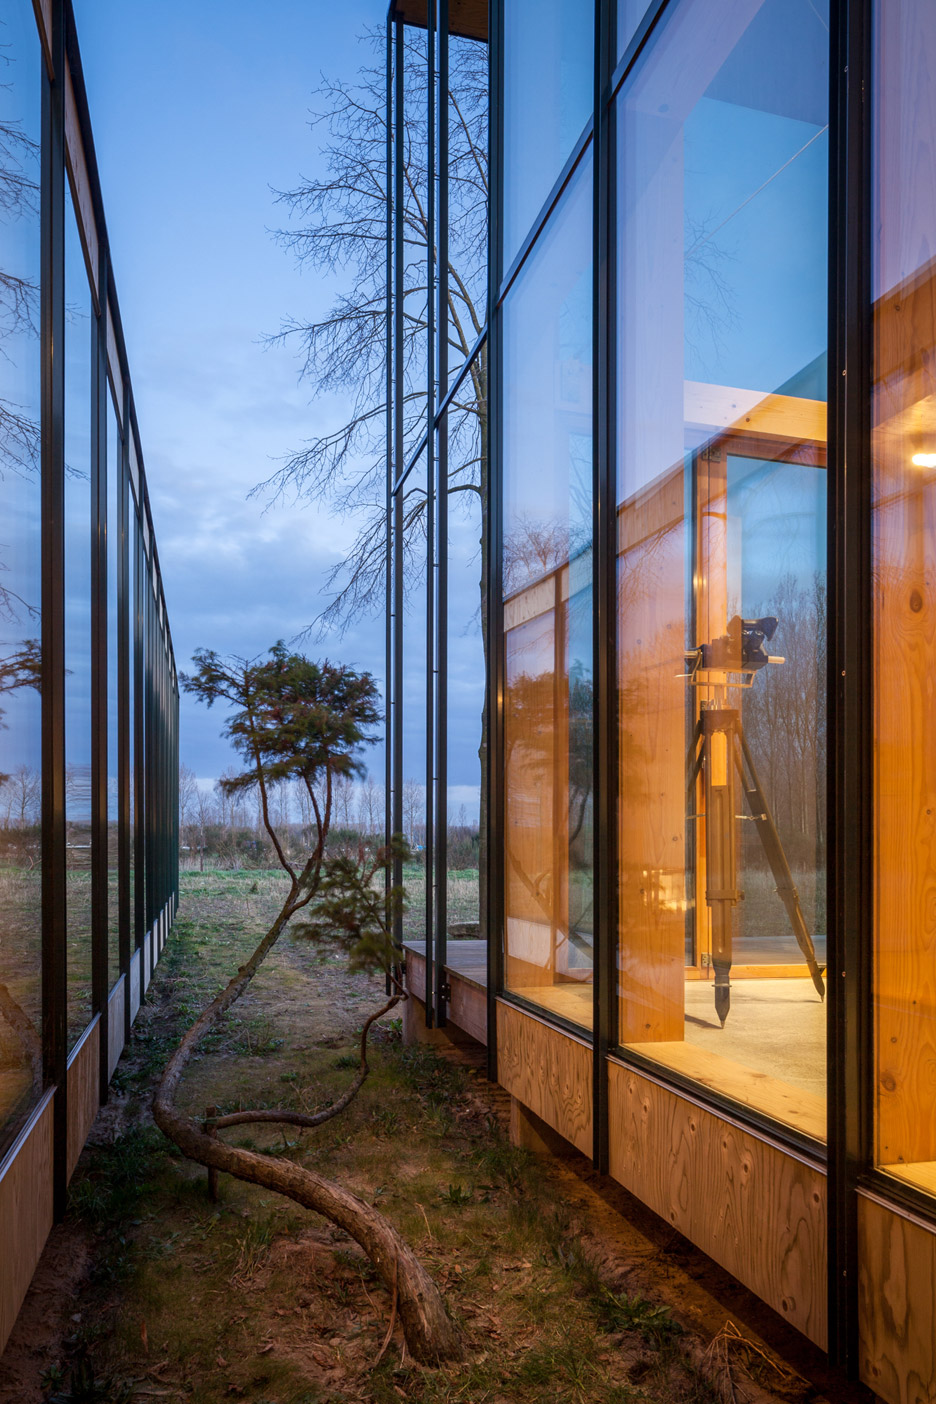 weekend-house-wachtebeke-gafpa_dezeen_936_24